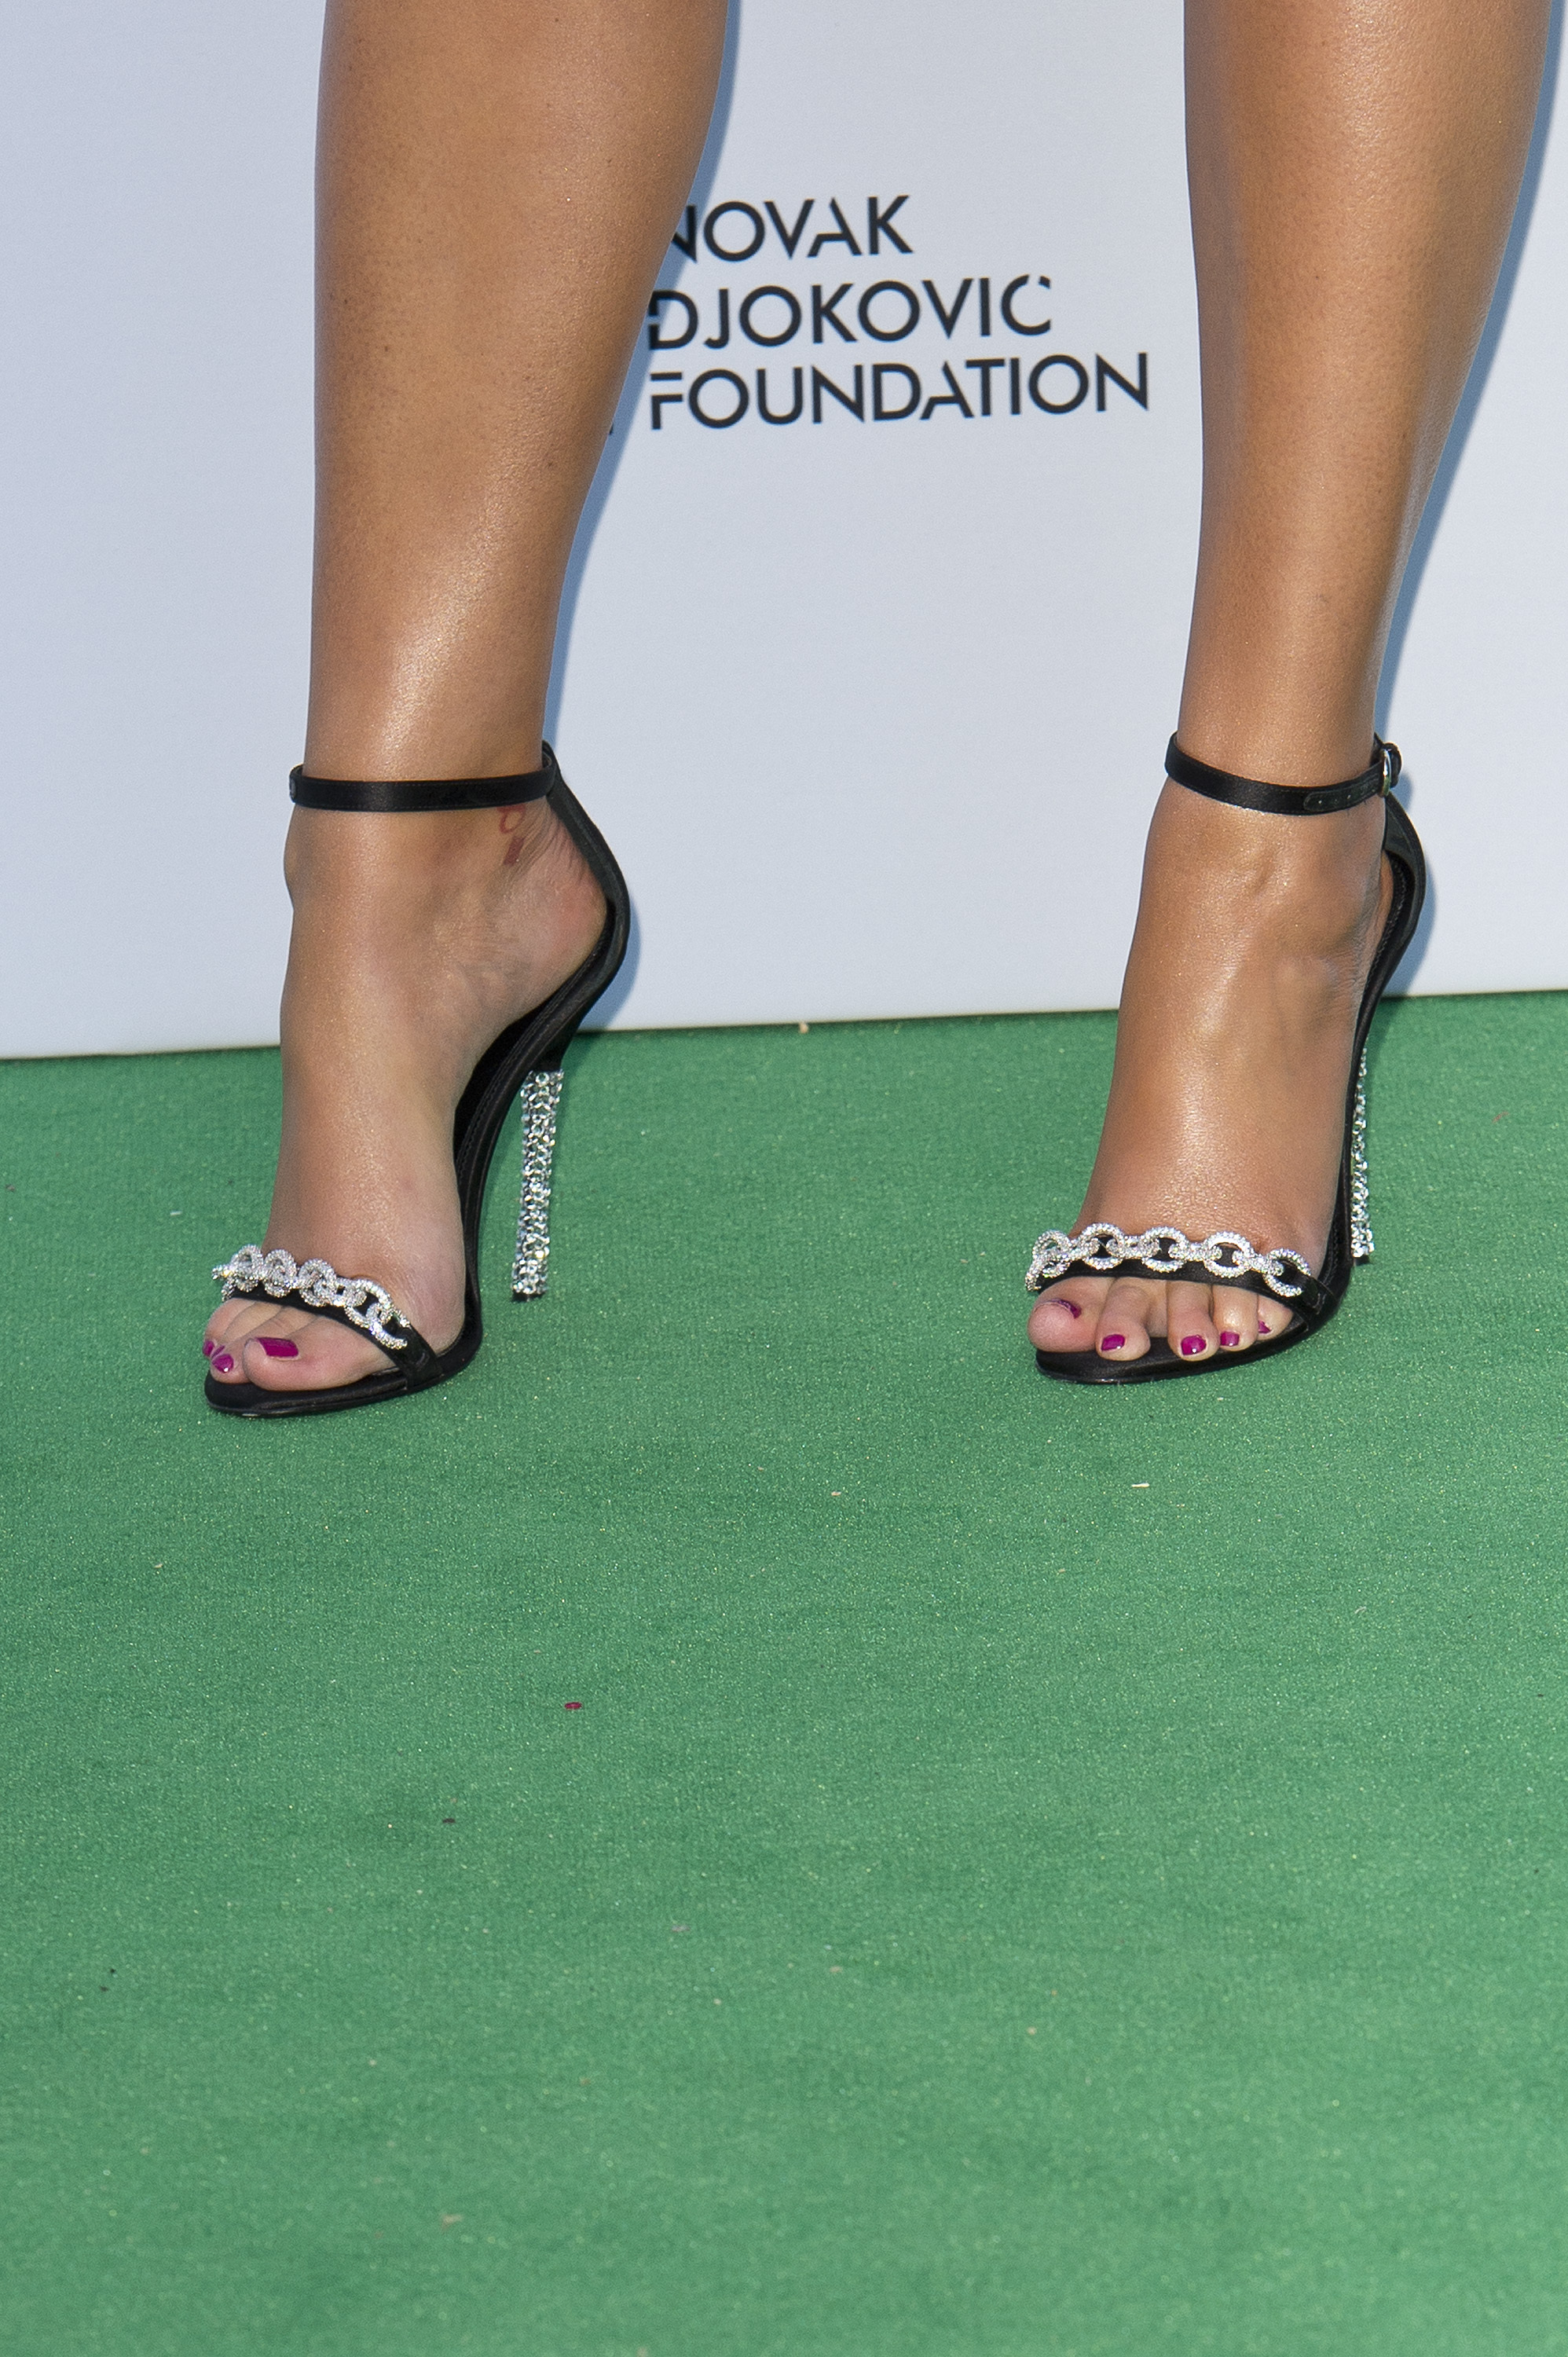 Feet Olympia Valance nude photos 2019